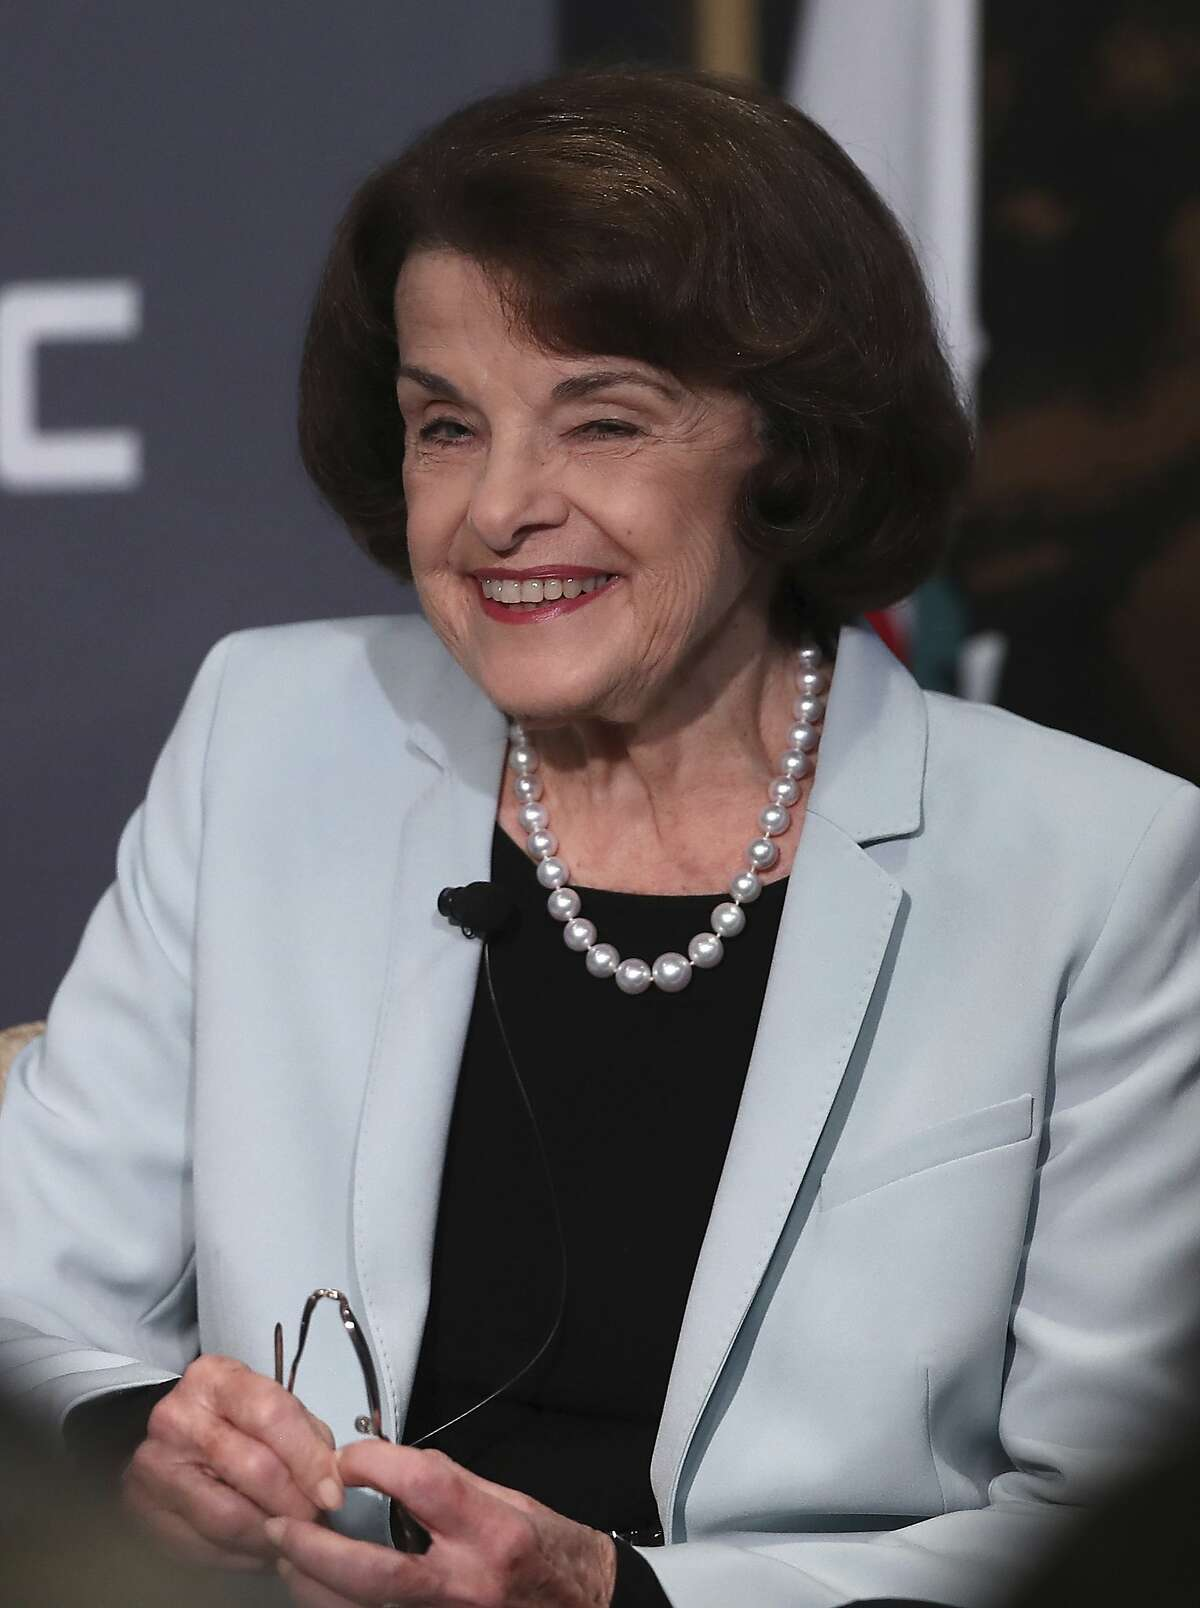 California Sen. Dianne Feinstein, D-Calif., smiles while speaking to California Sen. Kevin de Leon, D-Los Angeles, during a debate on Wednesday, Oct. 17, 2018, in San Francisco. Feinstein shared the stage with an opponent for the first time since 2000 when she debated state Sen. Kevin de Leon.The two Democrats are facing off in the Nov. 6 election. (AP Photo/Ben Margot)